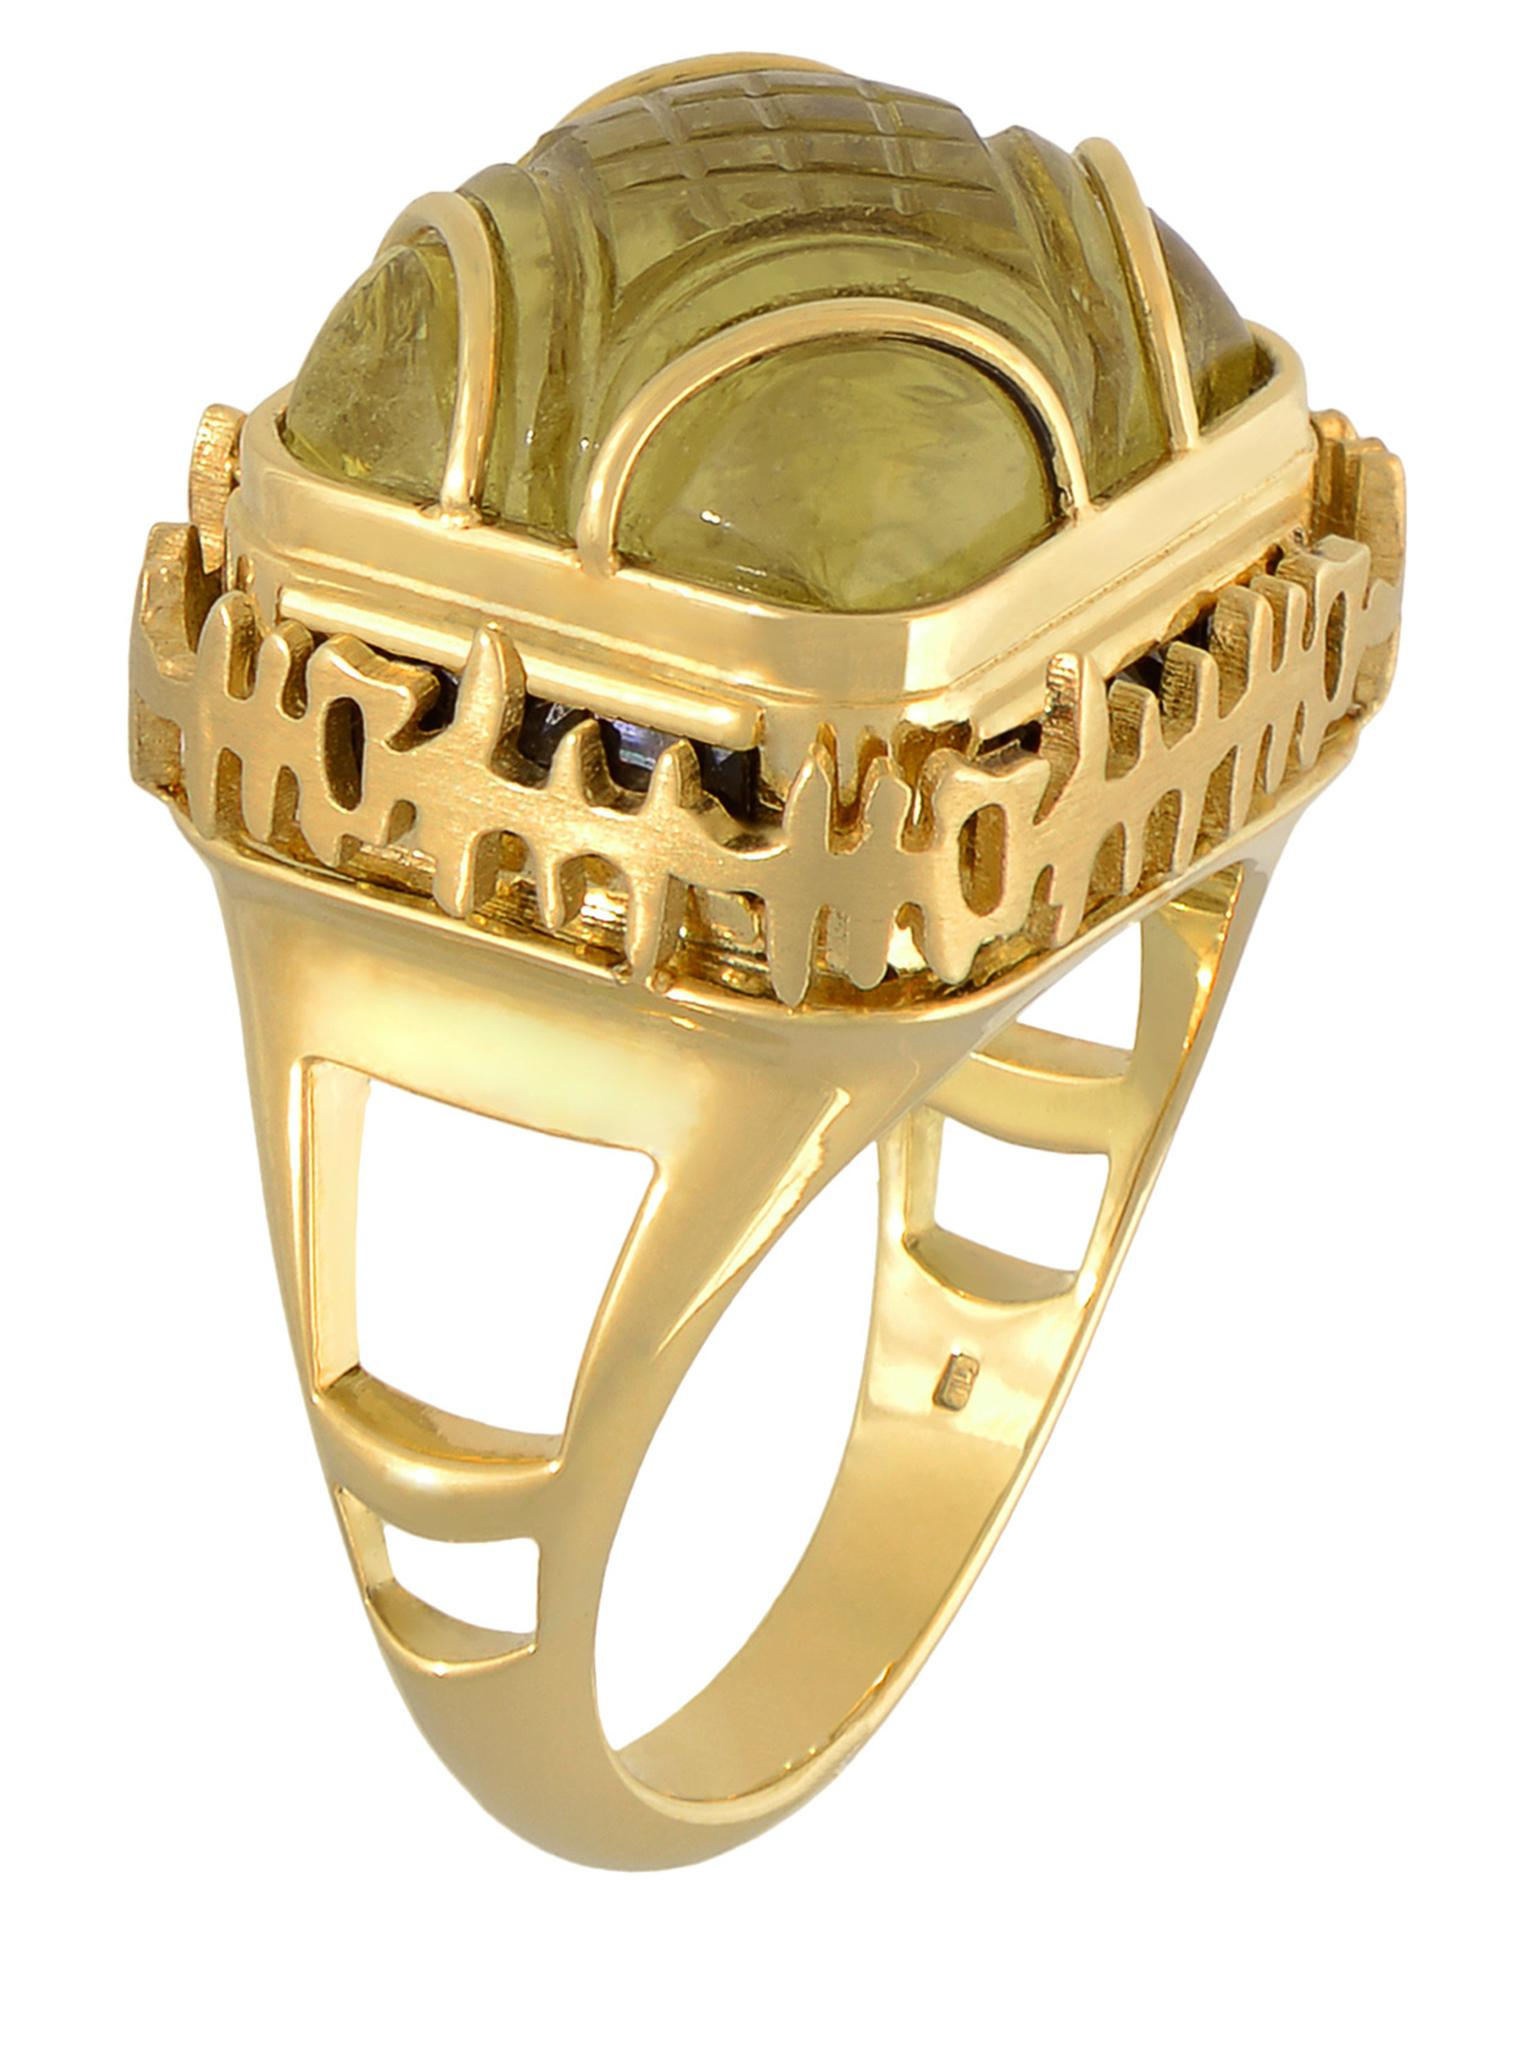 Tessa_Packard_Gold_Calligraphy_Ring_20140117_Zoom